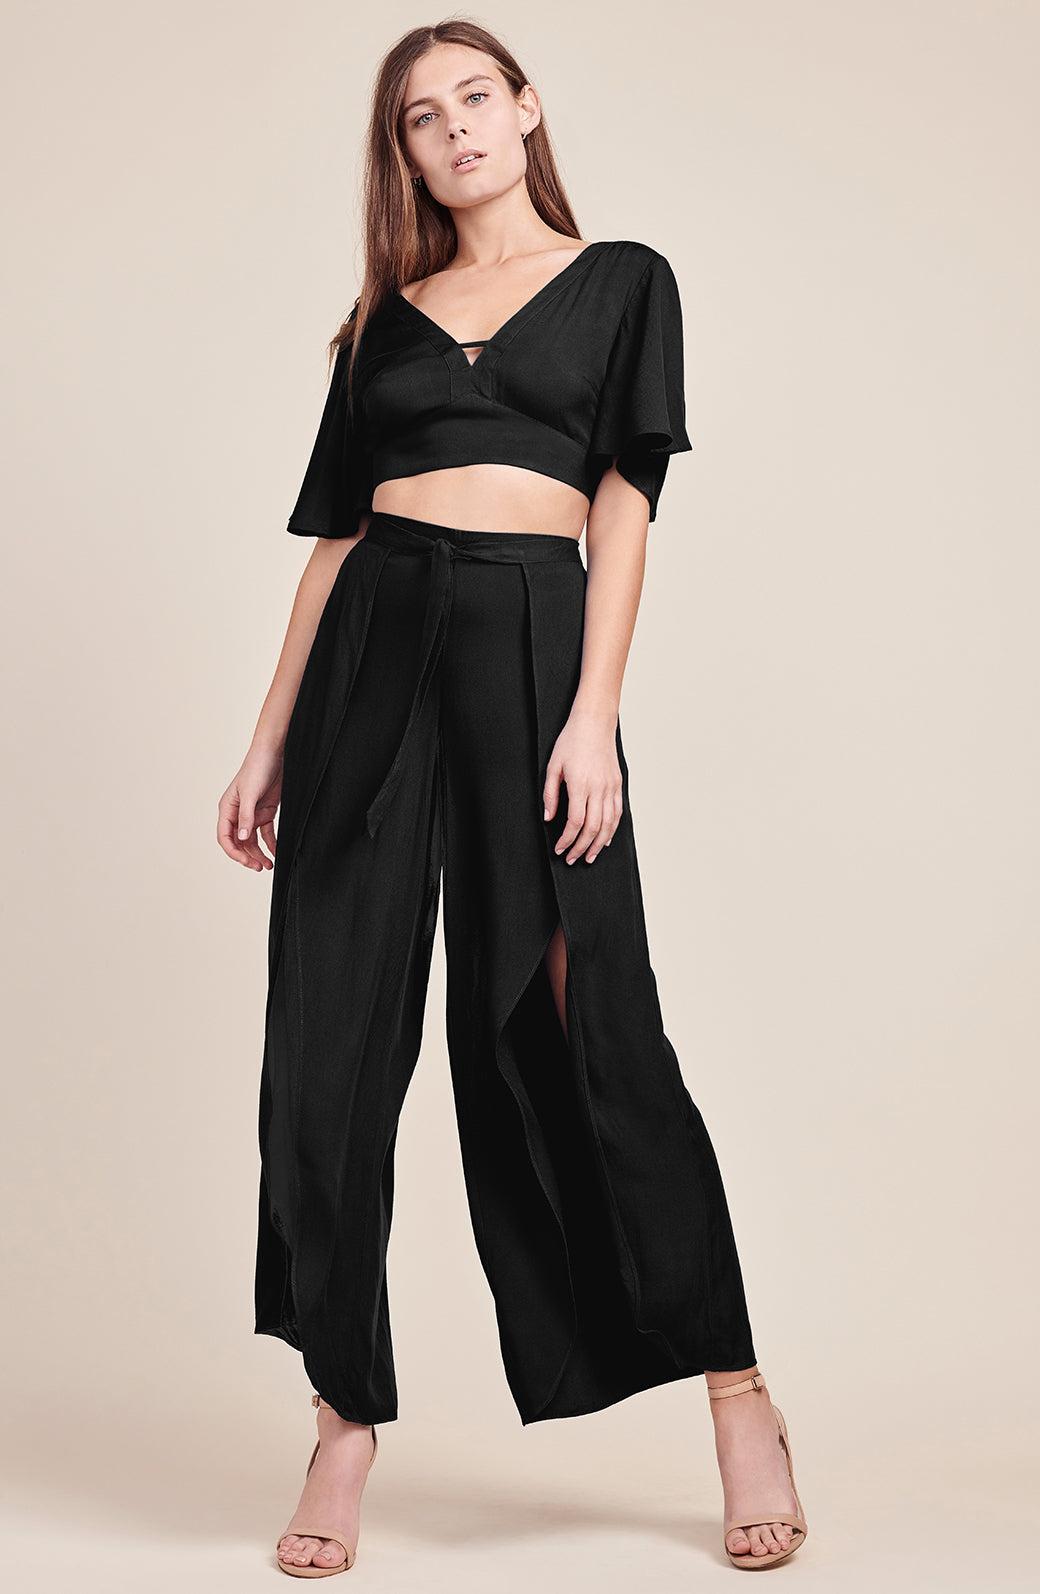 JACK by BB Dakota Emilia Pant in Black. - size L (also in M,S,XS) BB Dakota